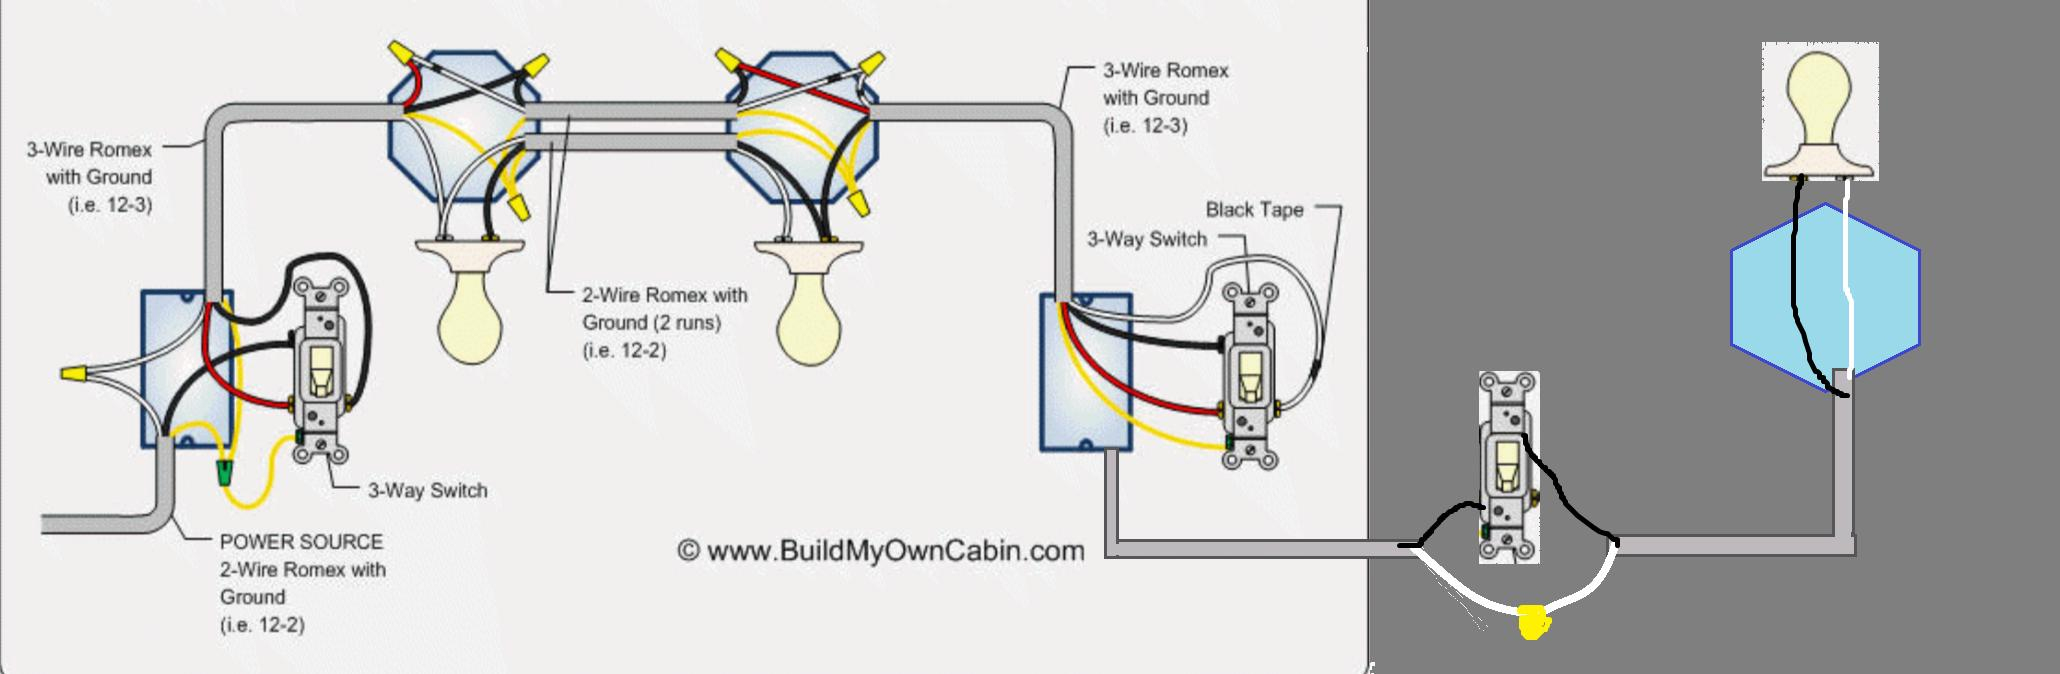 Wiring - Going From 3 Way Switch To A Regular Switch - Home - Wiring Diagram For 3Way Switch